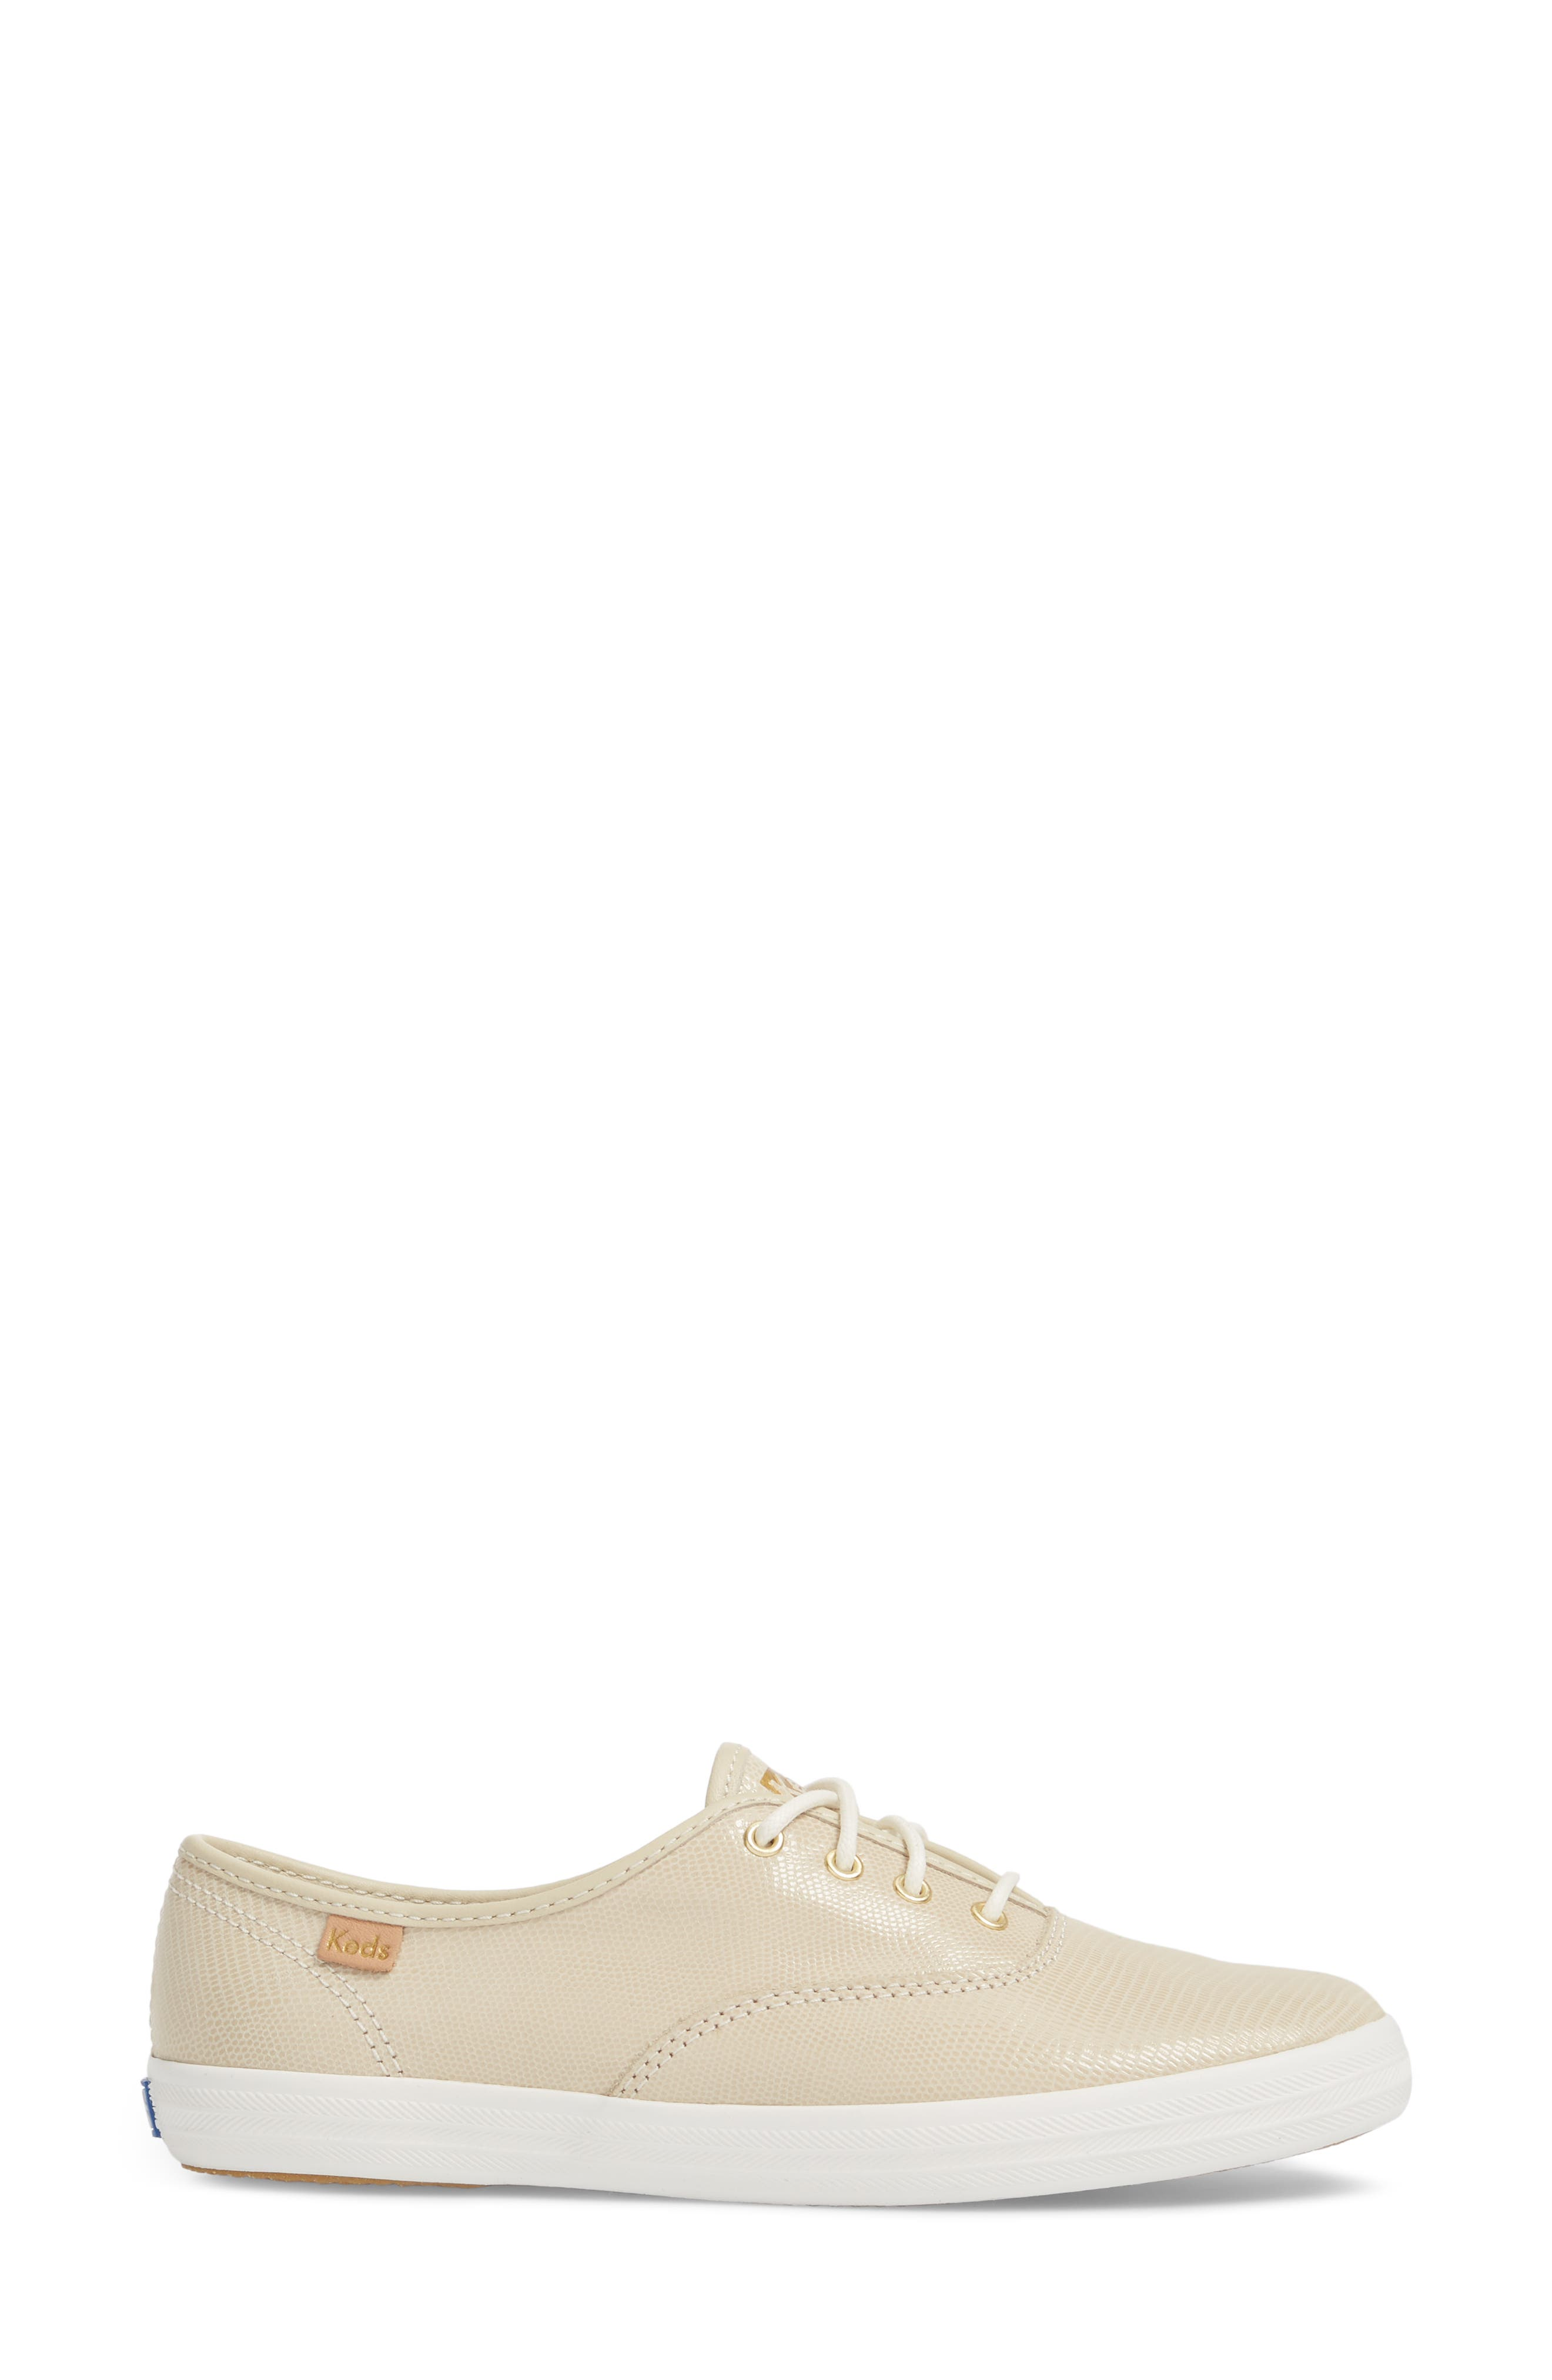 Champion Pretty Leather Sneaker,                             Alternate thumbnail 3, color,                             Ivory